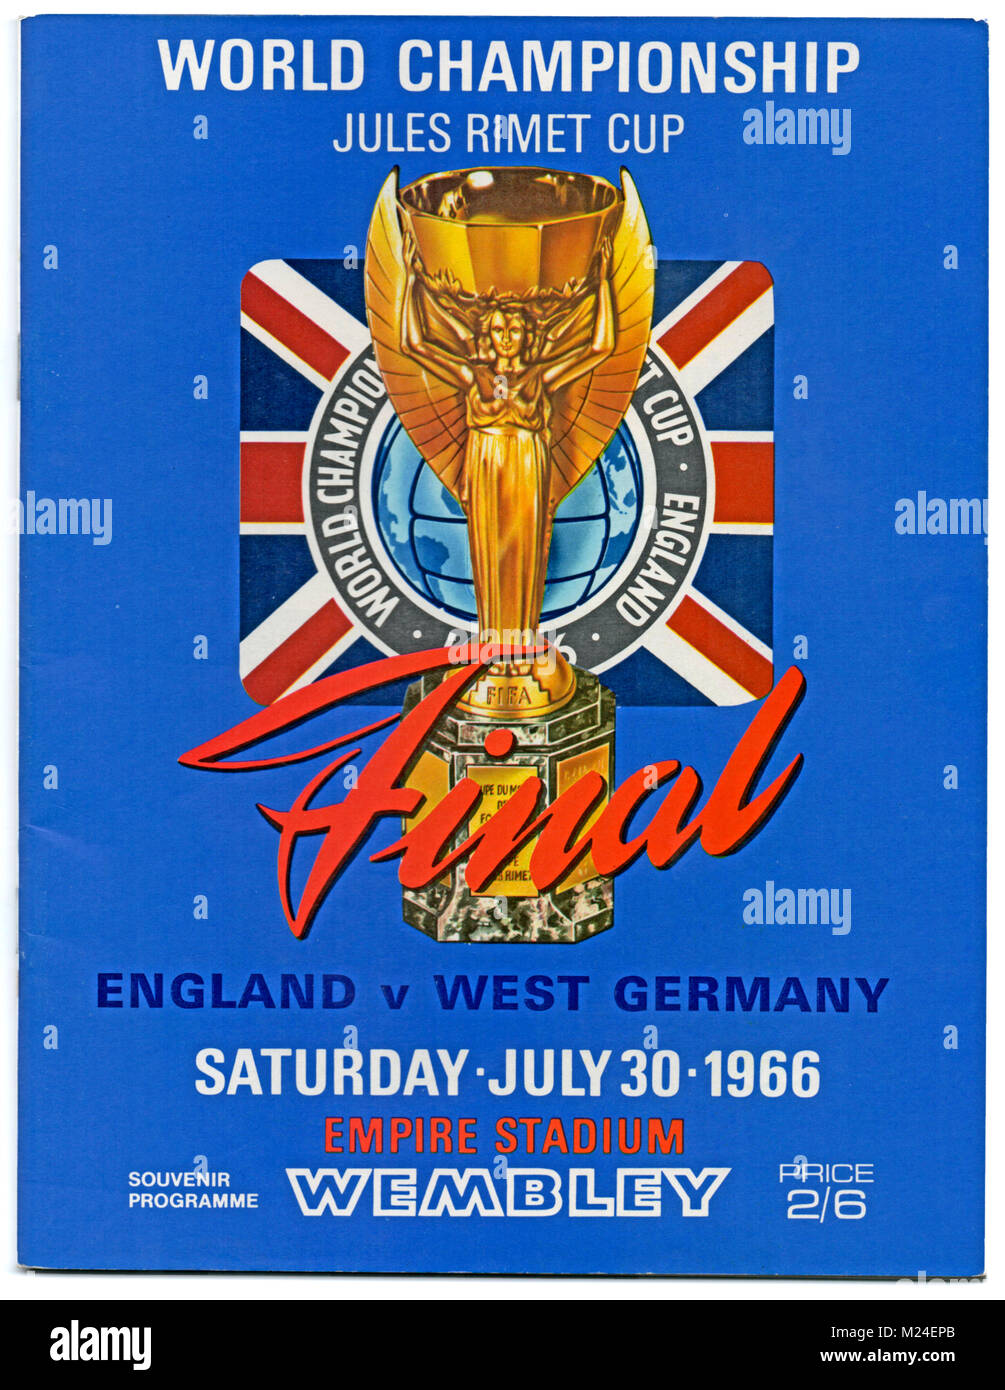 Football Programme: 1966 World Cup Final, England v West Germany, 30th July 1966. England won 4-2 after extra time. Stock Photo